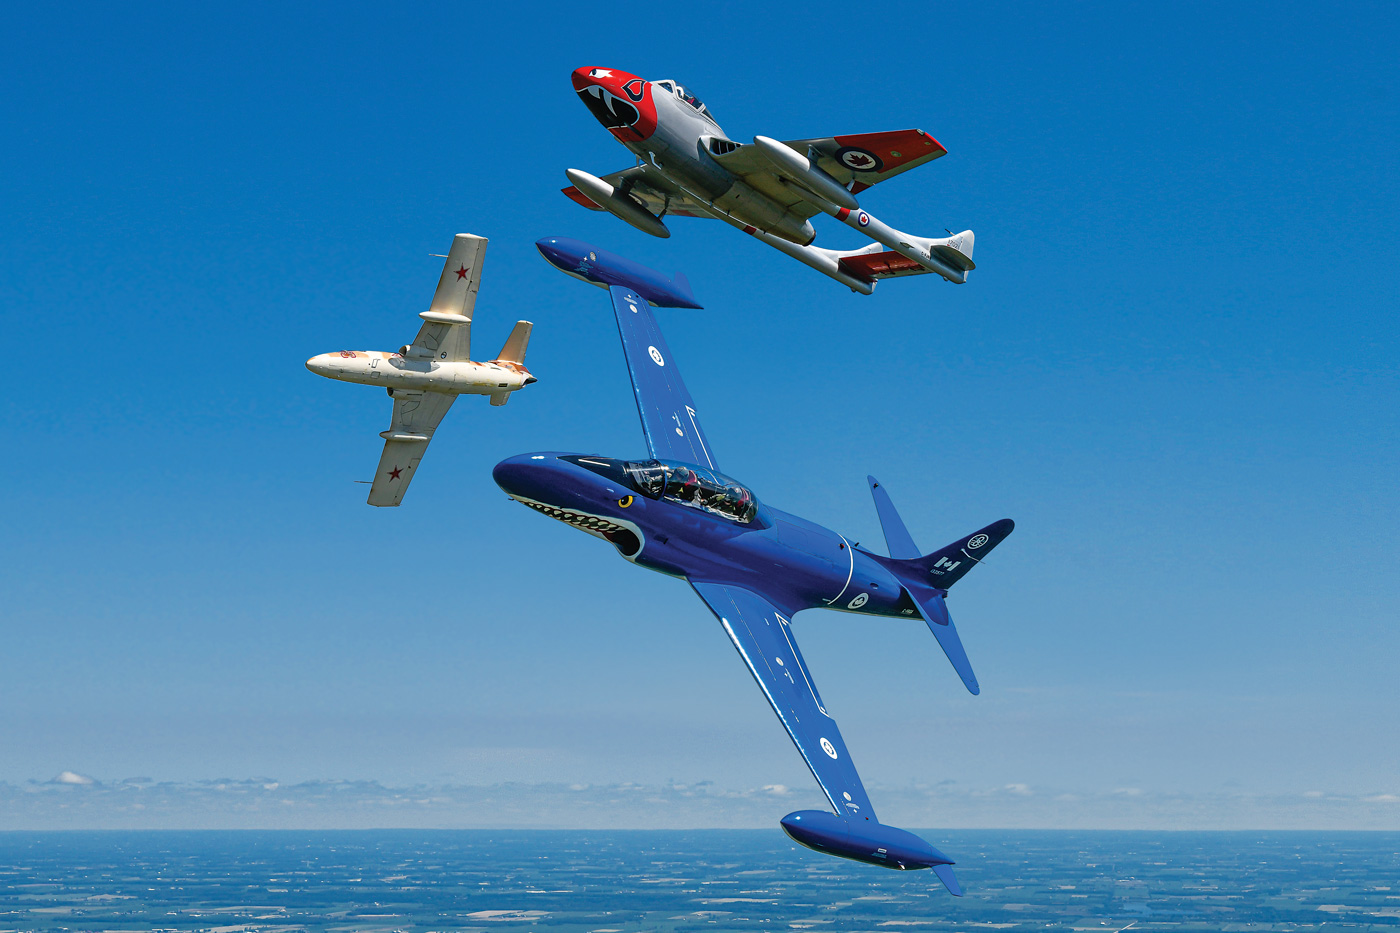 """Waterloo Warbirds aimed to make the paint schemes on each aircraft as eye-catching as possible -- such as the Ct-133's bright blue """"Mako Shark"""" livery (foreground). Mike Reyno Photo"""